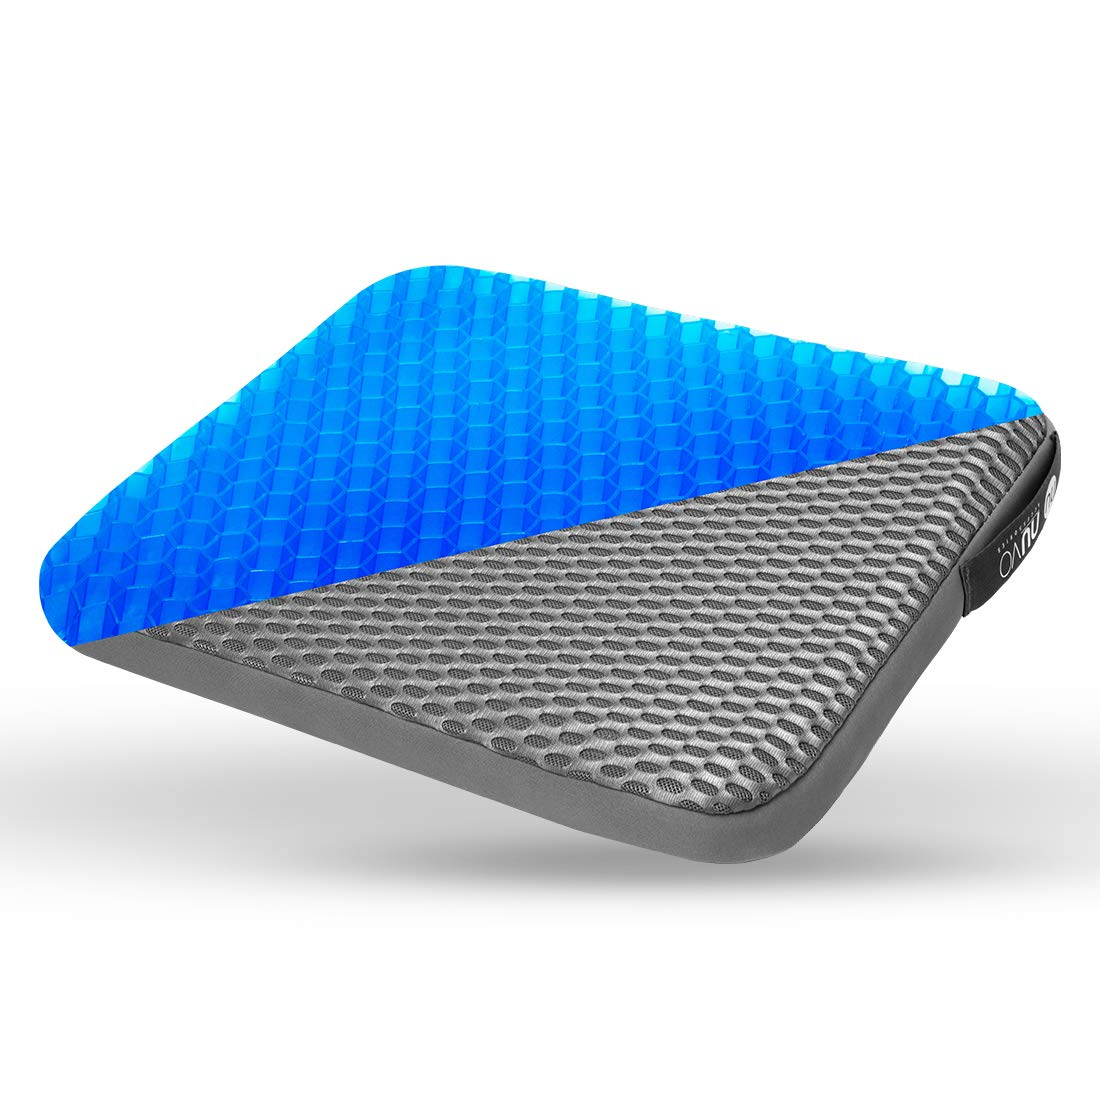 Gel Seat Cushion - Relieves Pain - for Car, Office Chair, Wheelchair, or Home